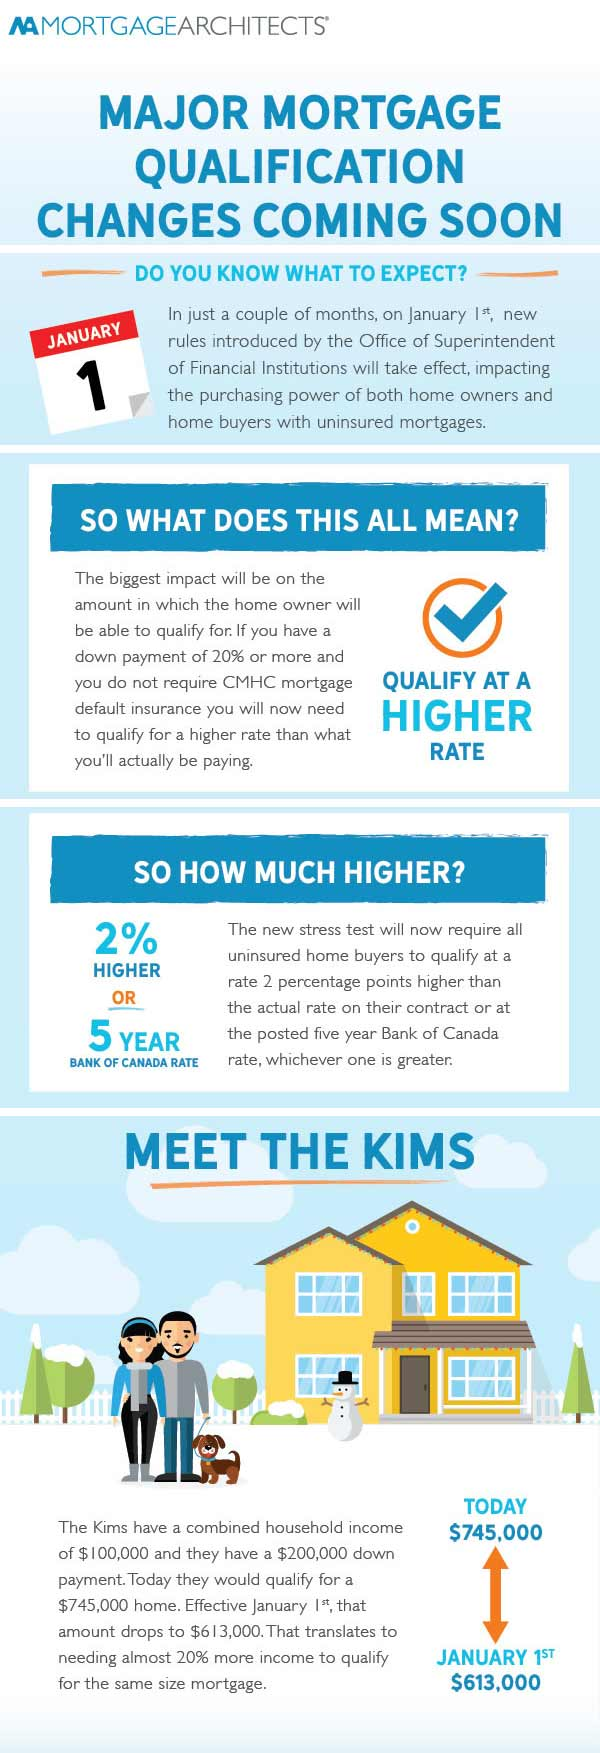 A visual representation of what the new mortgage qualification rules mean, and how that might impact a home buyer